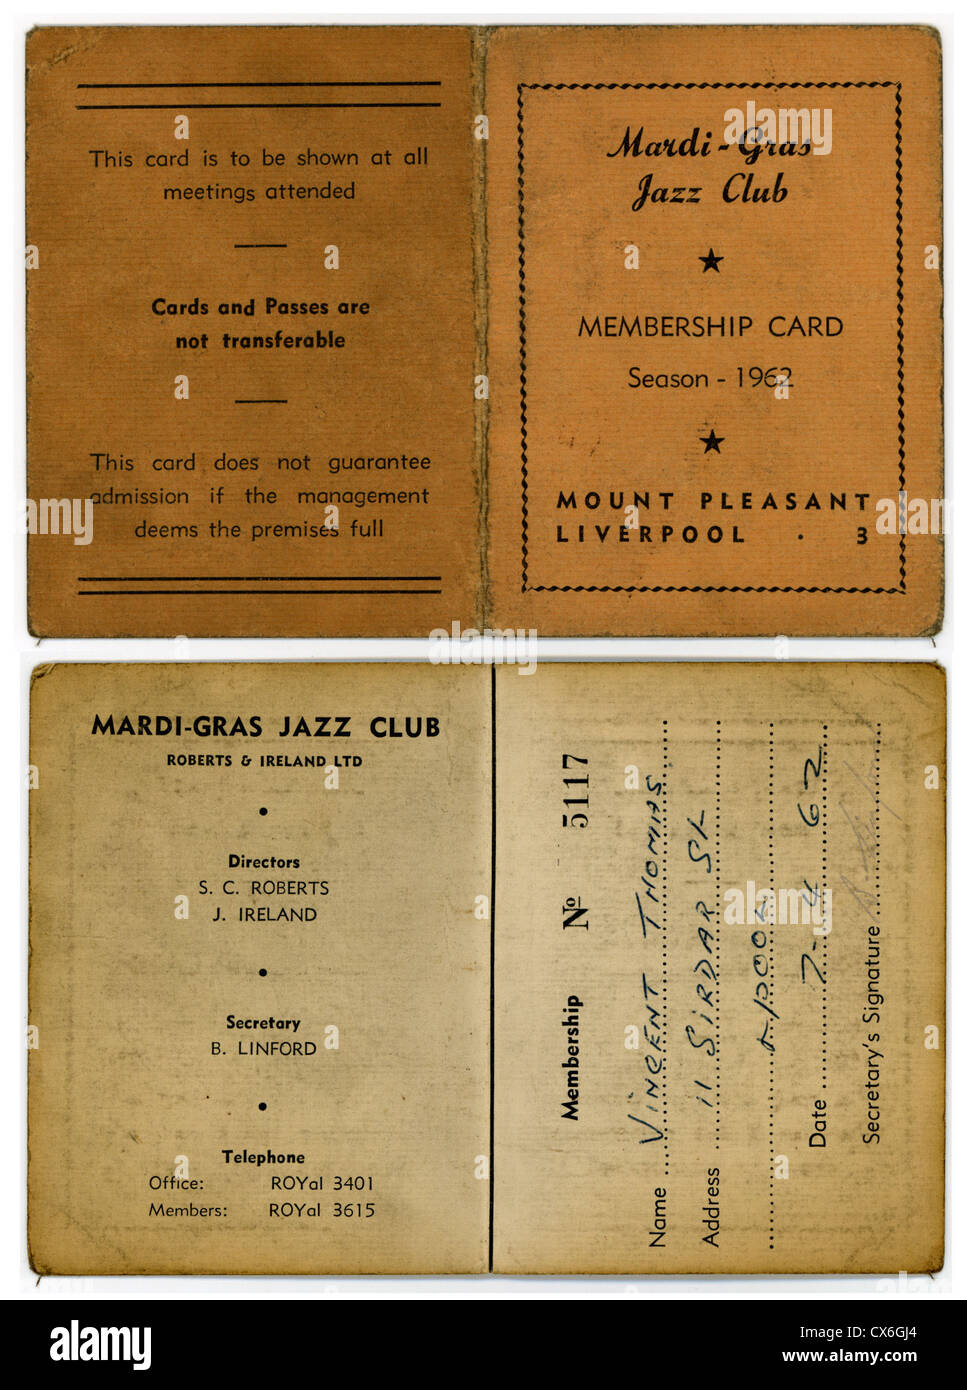 000553 - Mardi Gras Jazz Club 1962 Membership Card - Stock Image